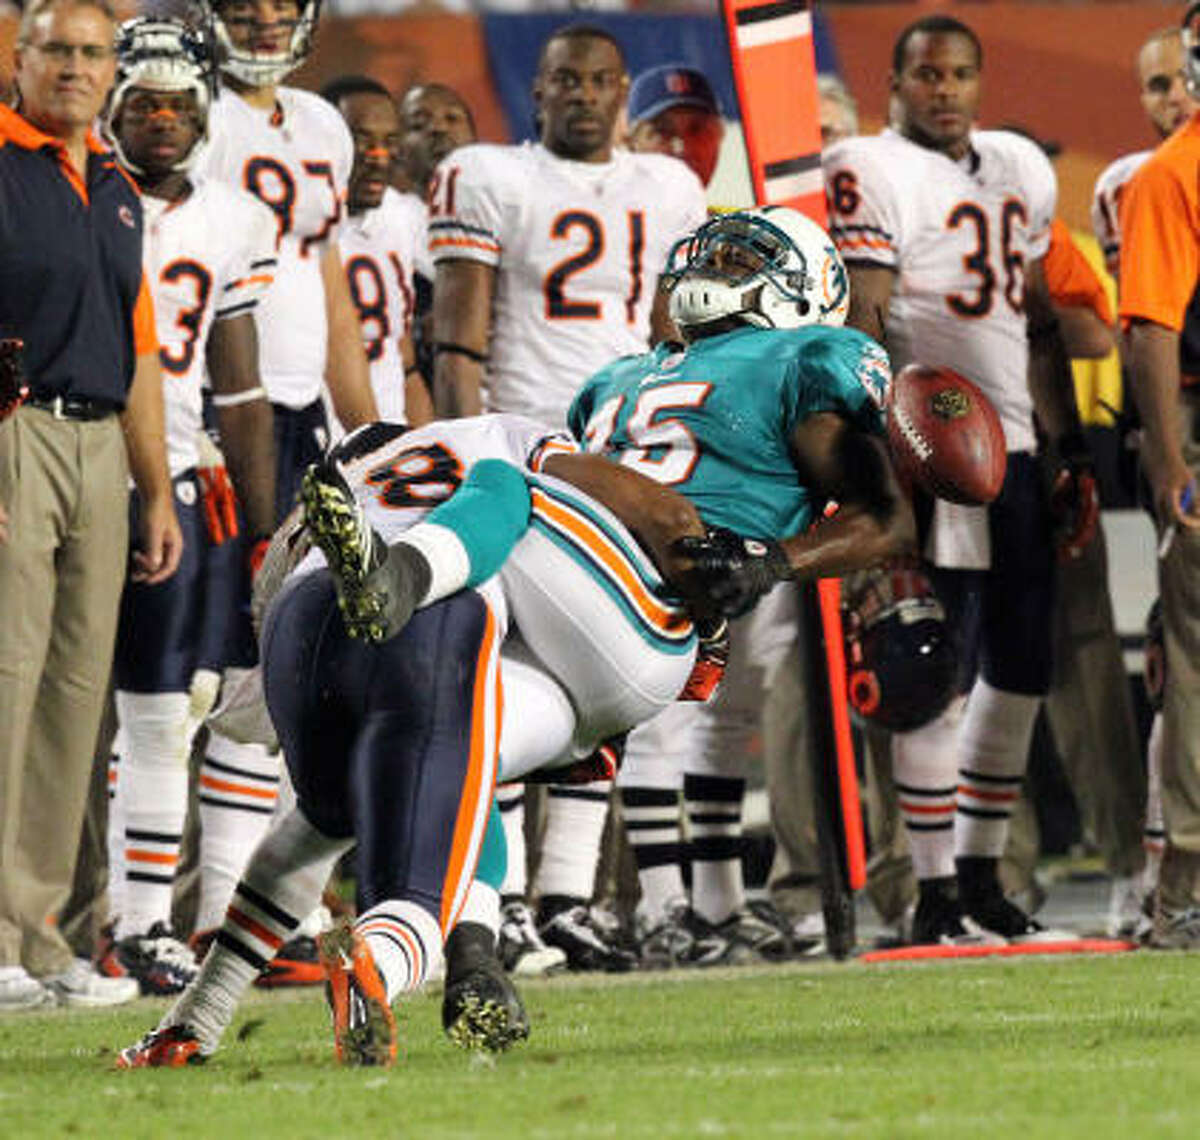 Nov. 18: Bears 16, Dolphins 0 Dolphins wide receiver Davone Bess (15) missed the pass but did not avoid a hit from Bears safety Danieal Manning in the fourth quarter of Thursday night's game at Sun Life Stadium in Miami.